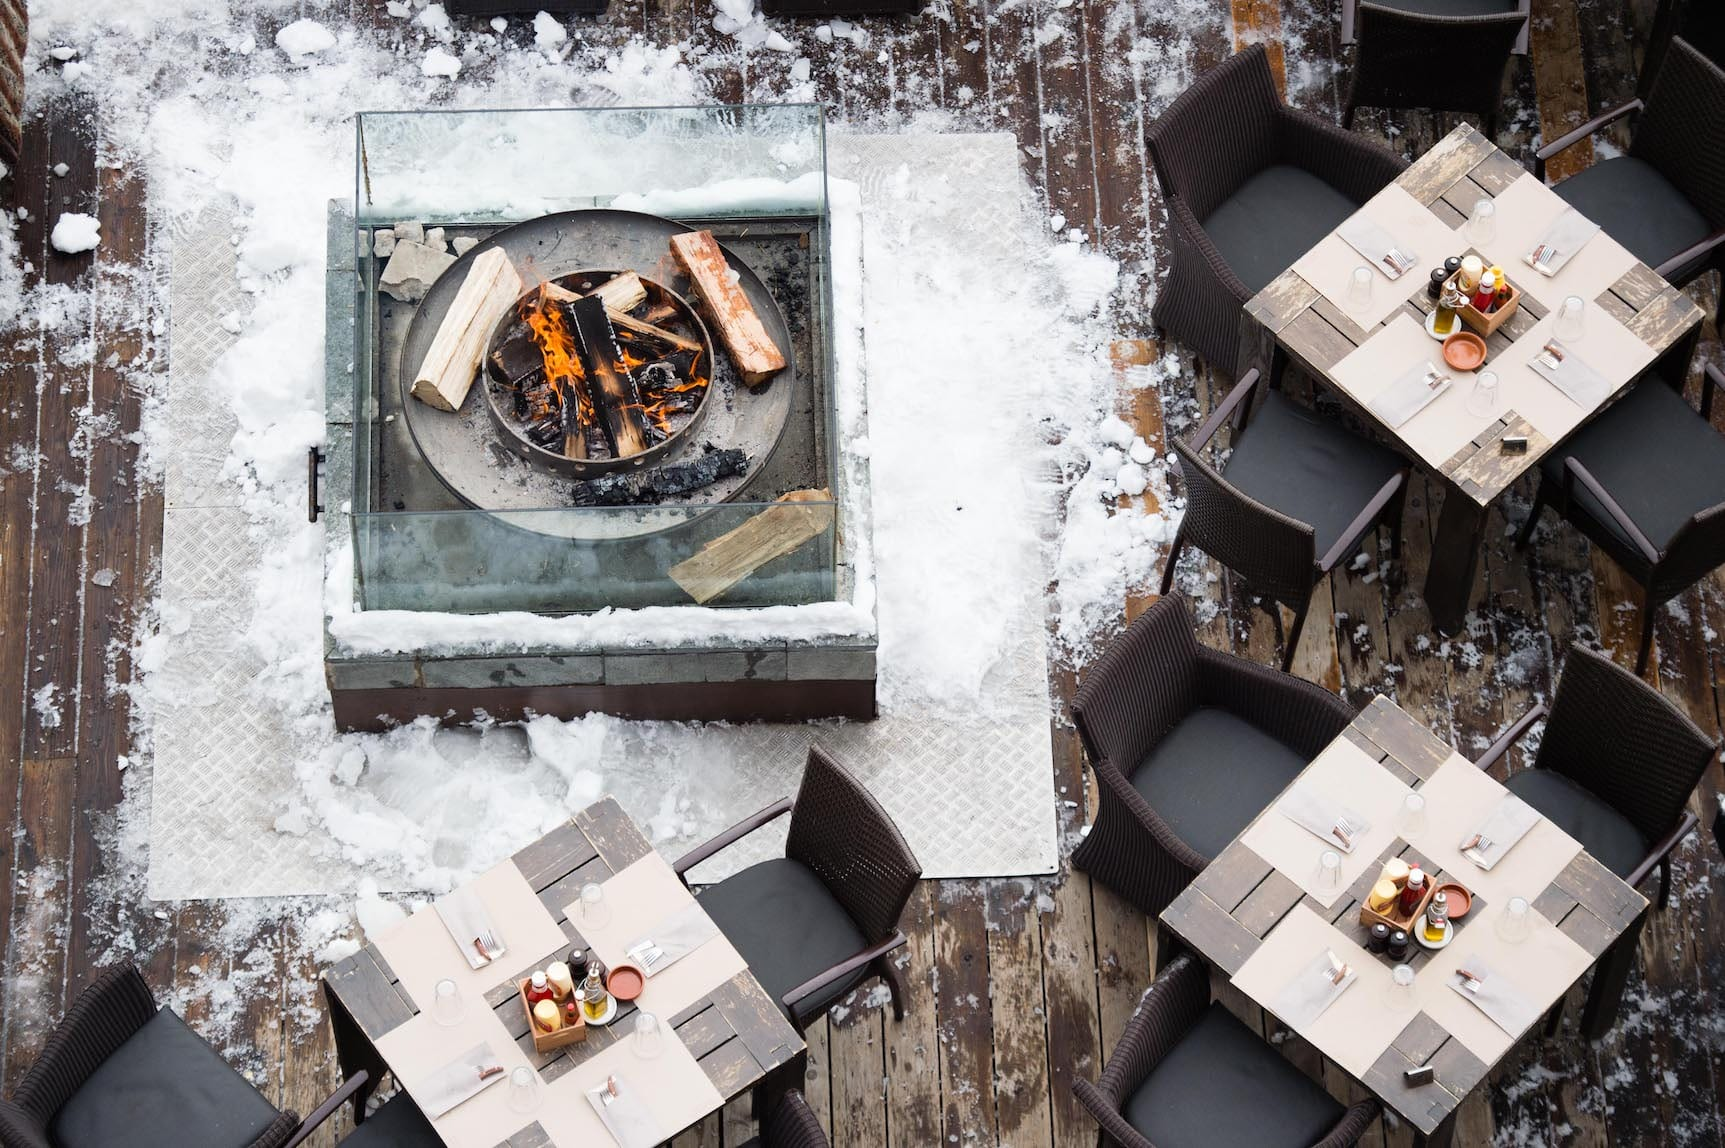 fire-ice-from-above-portetta-amy-murrell-3